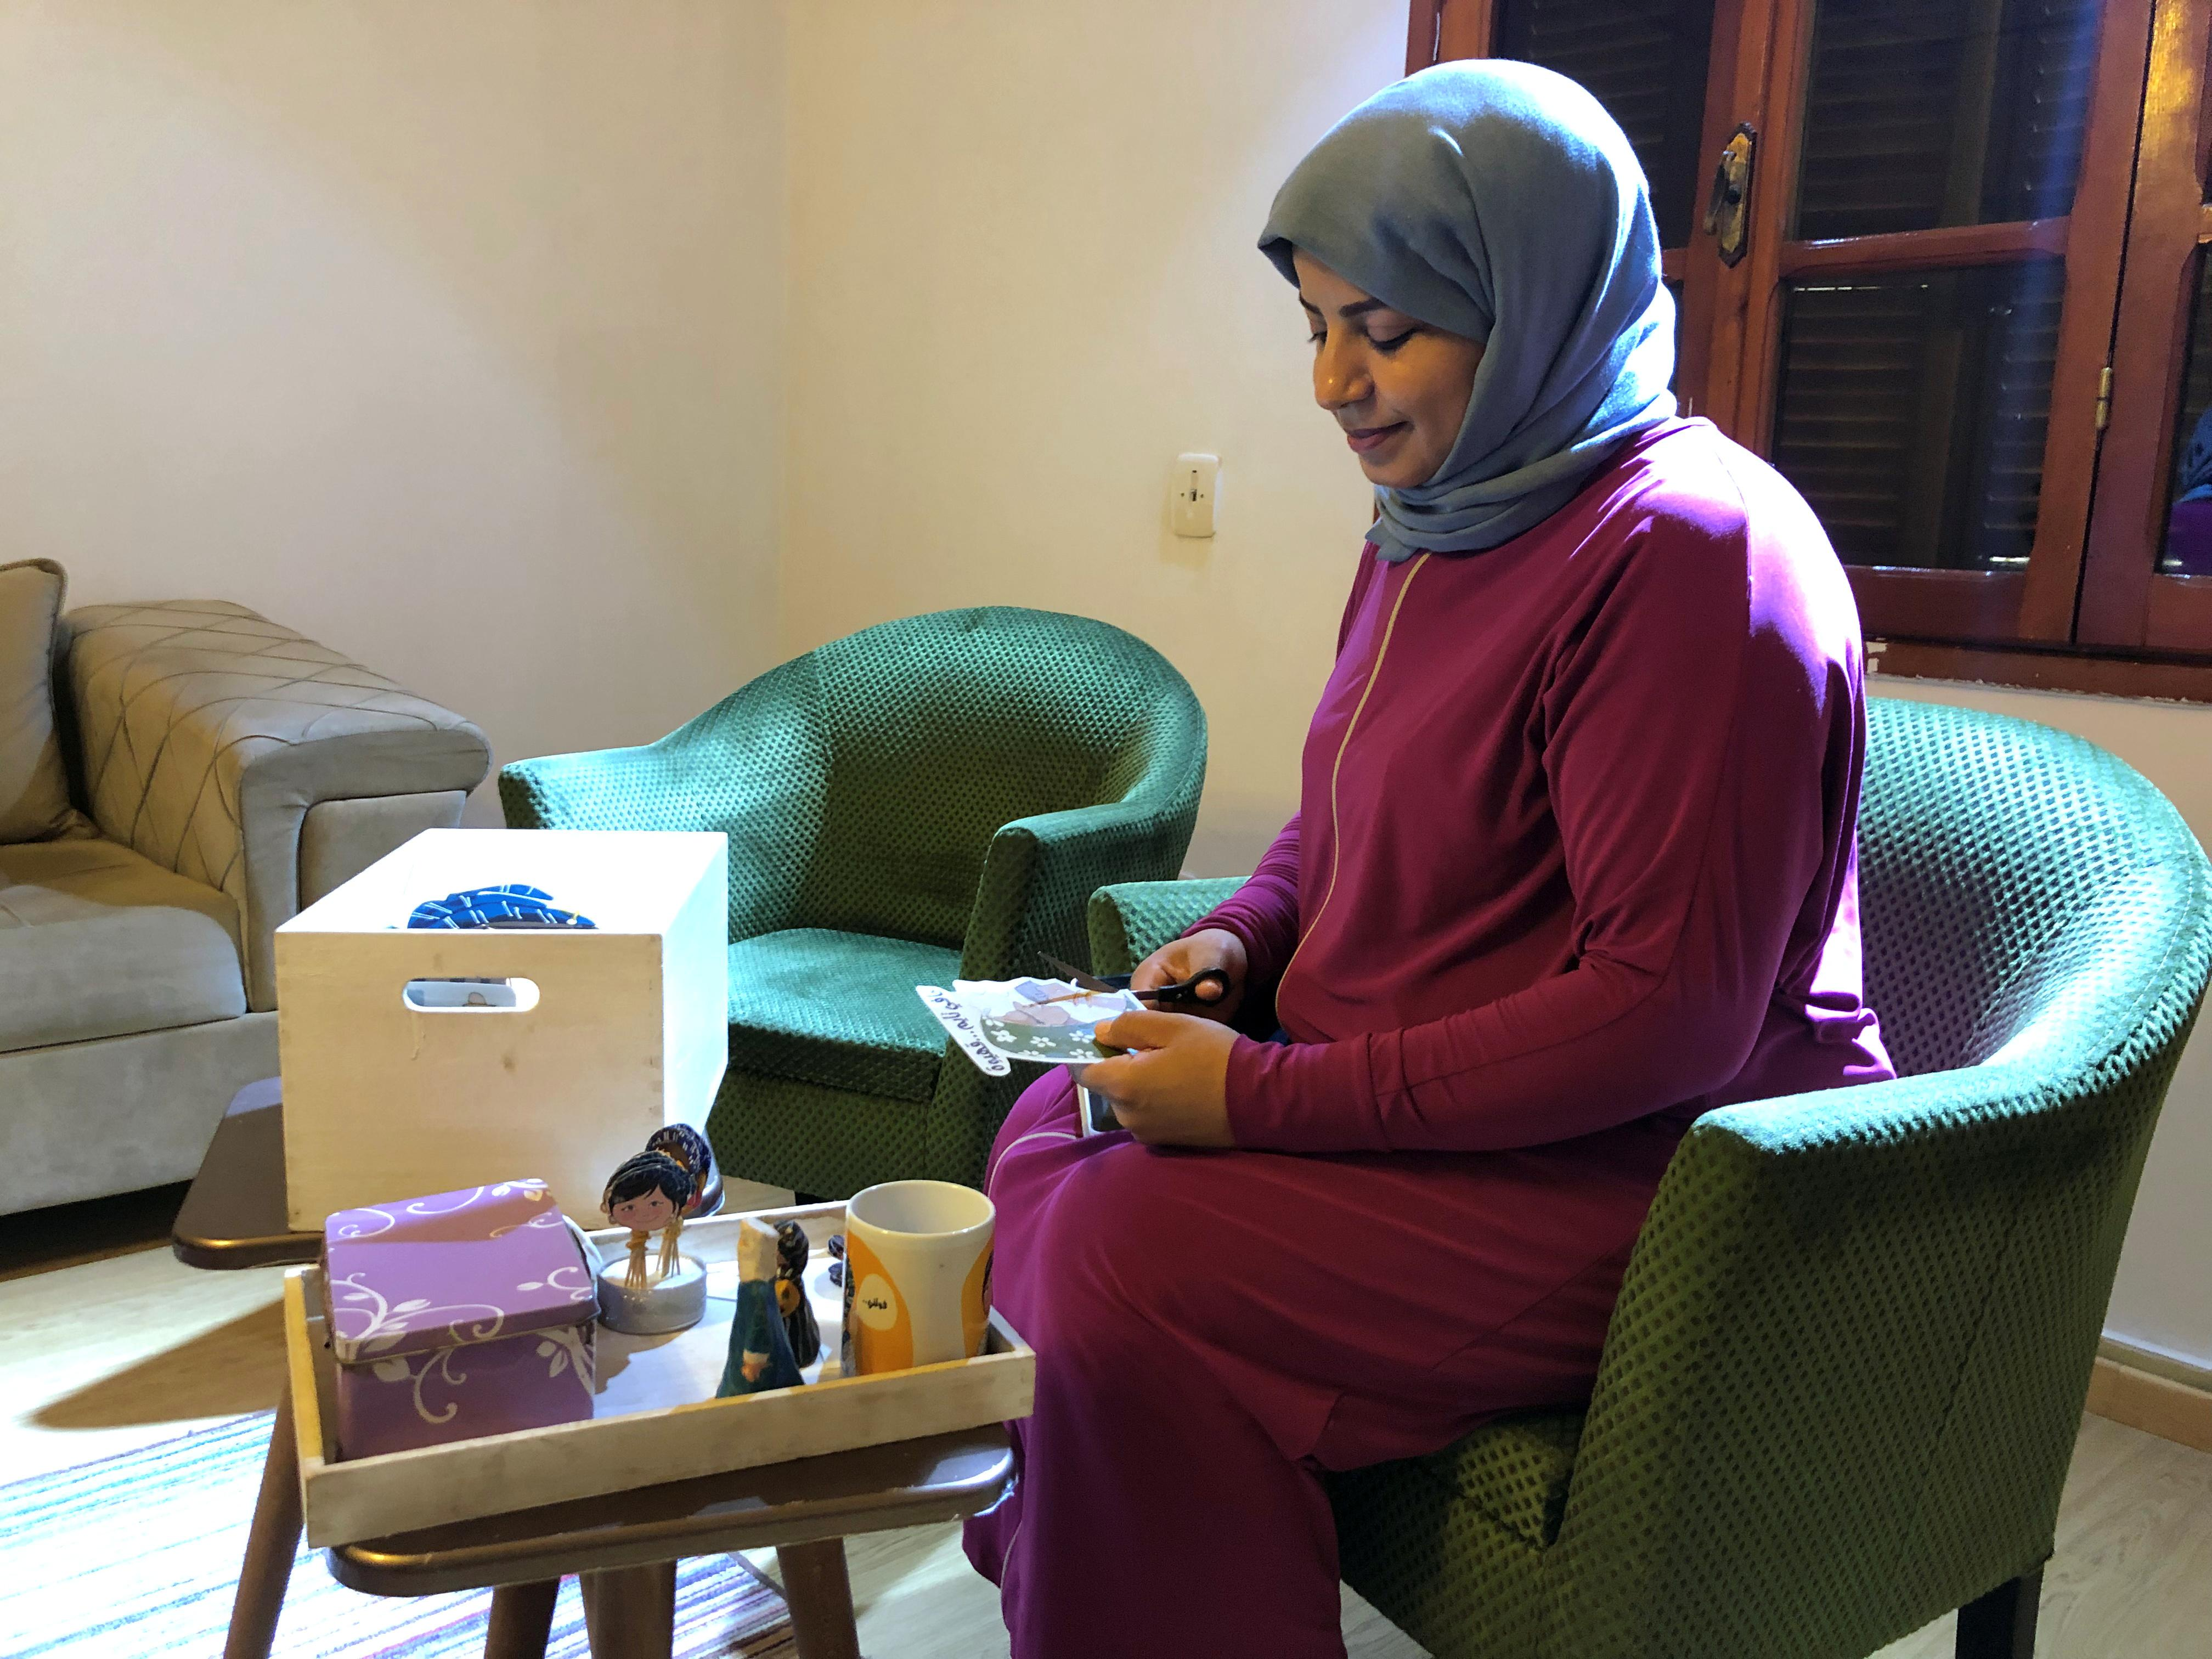 Selling sketches and clothes, Libyan women set up businesses against the odds